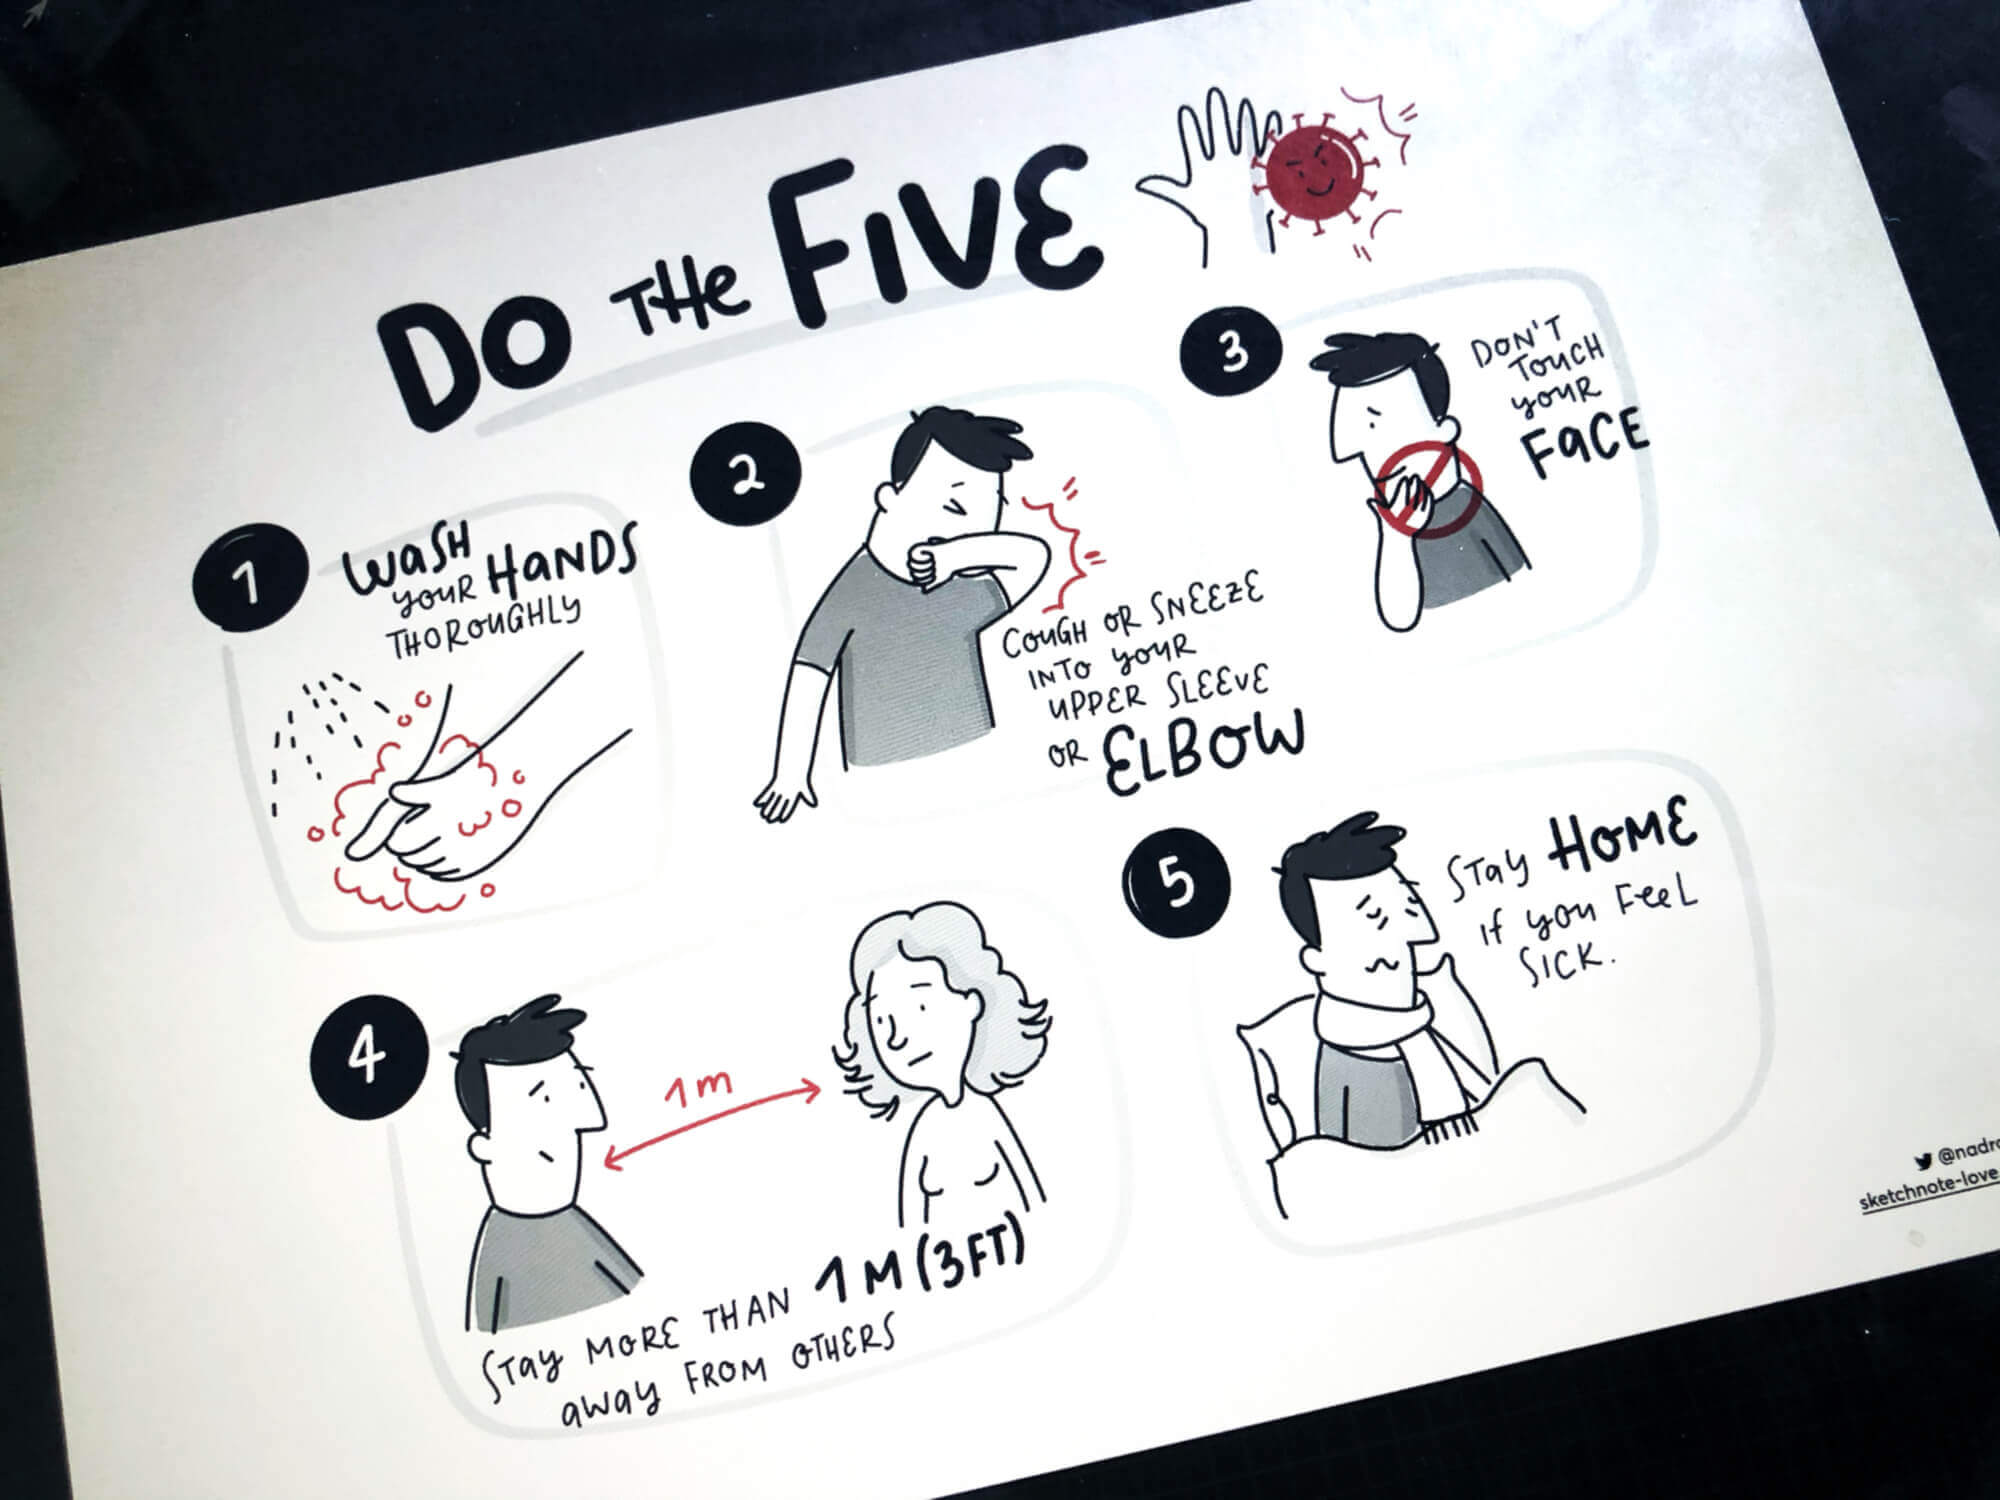 Do the Five Sketchnotes